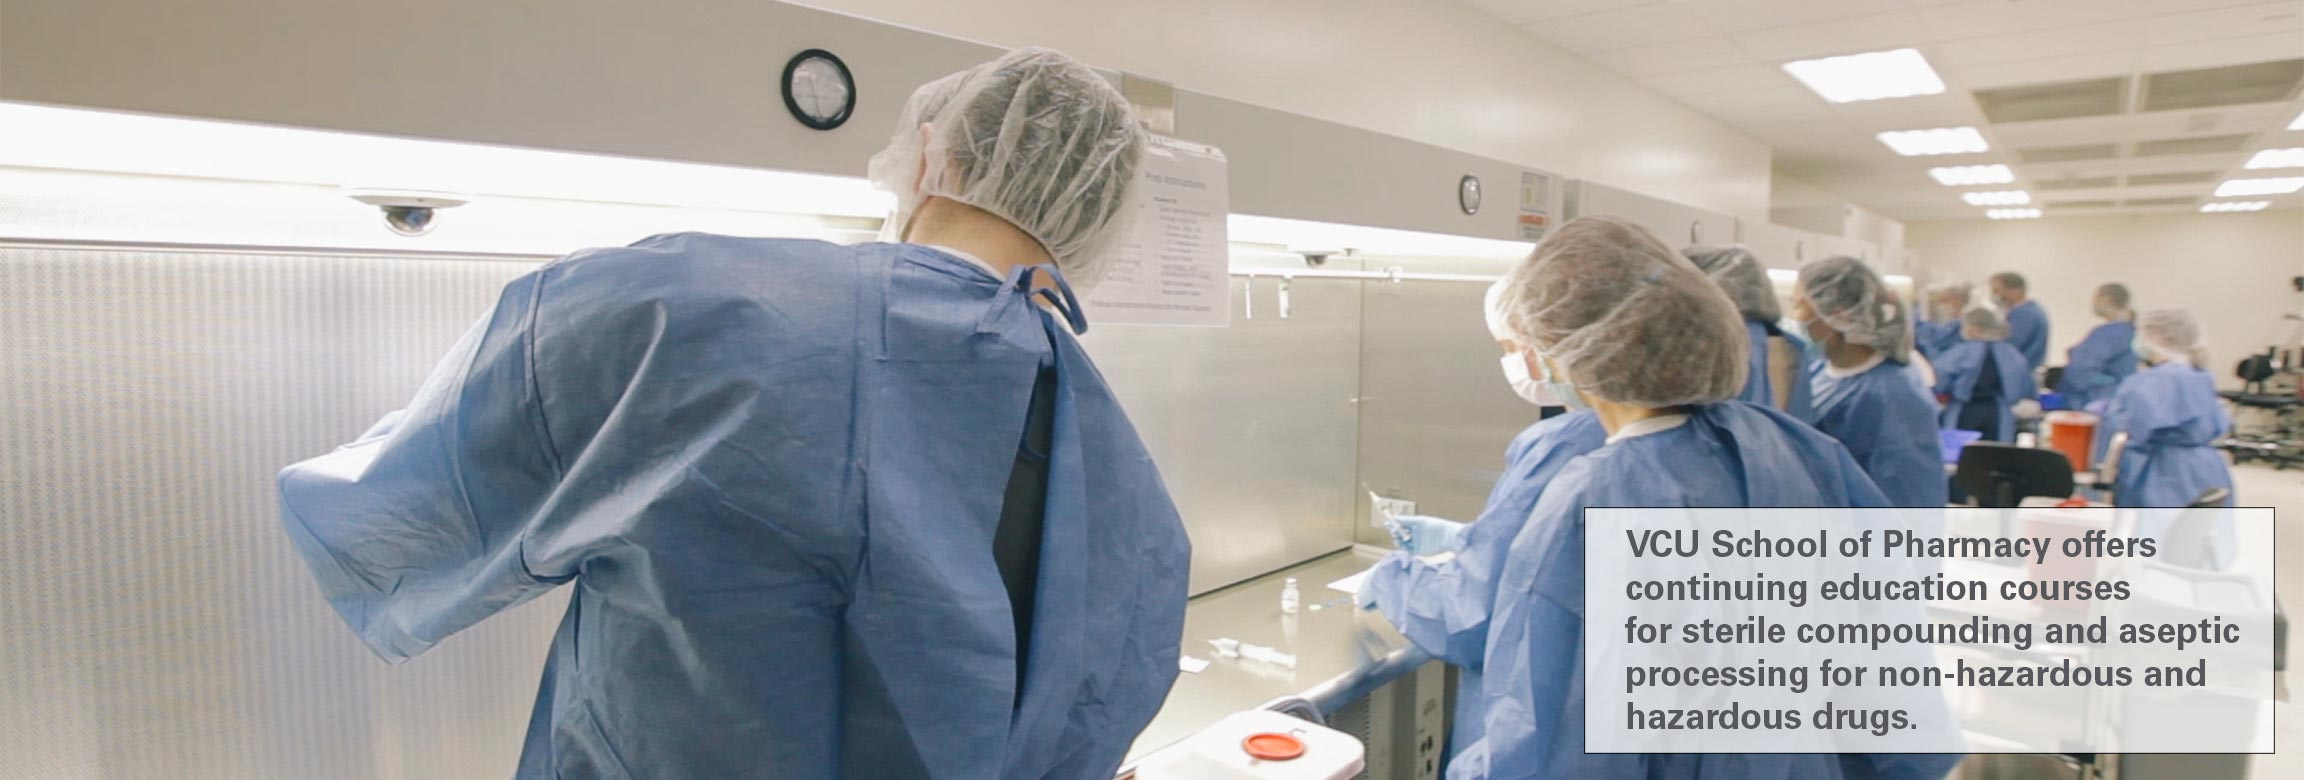 The VCU School of Pharmacy offers continuing education courses for sterile compounding and aseptic processing for non-hazardous and hazardous drugs